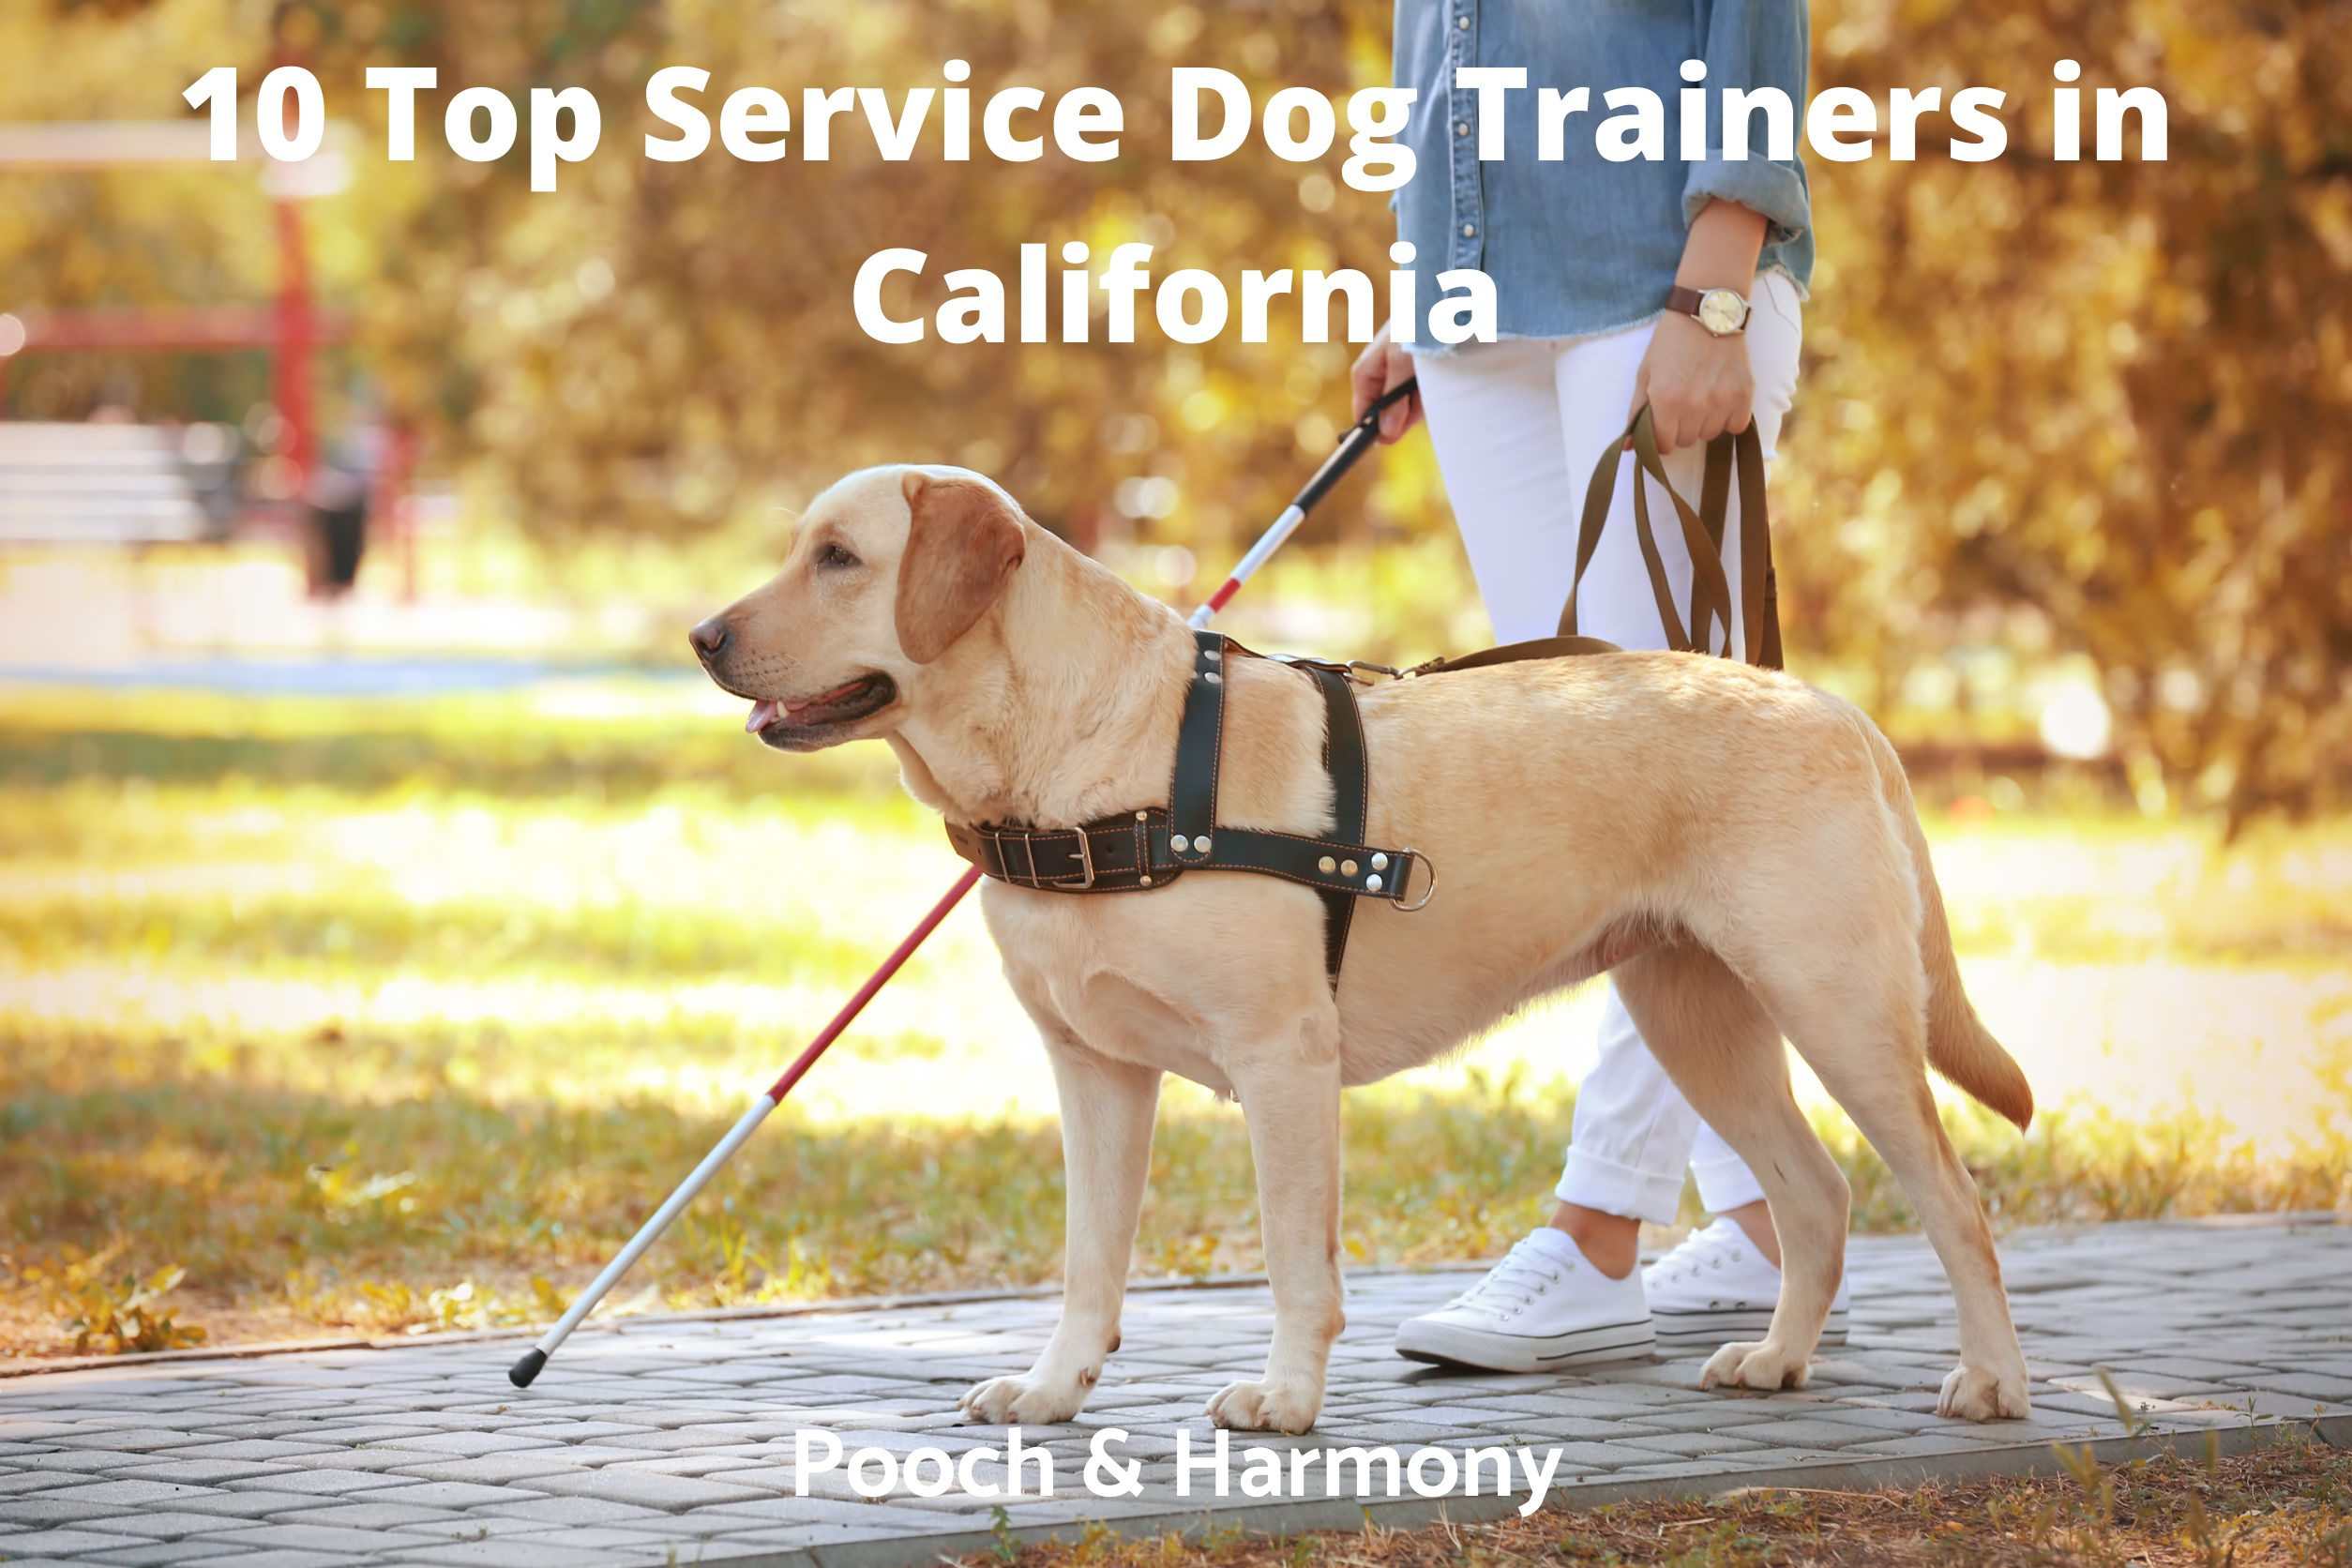 Service Dog Trainers in California